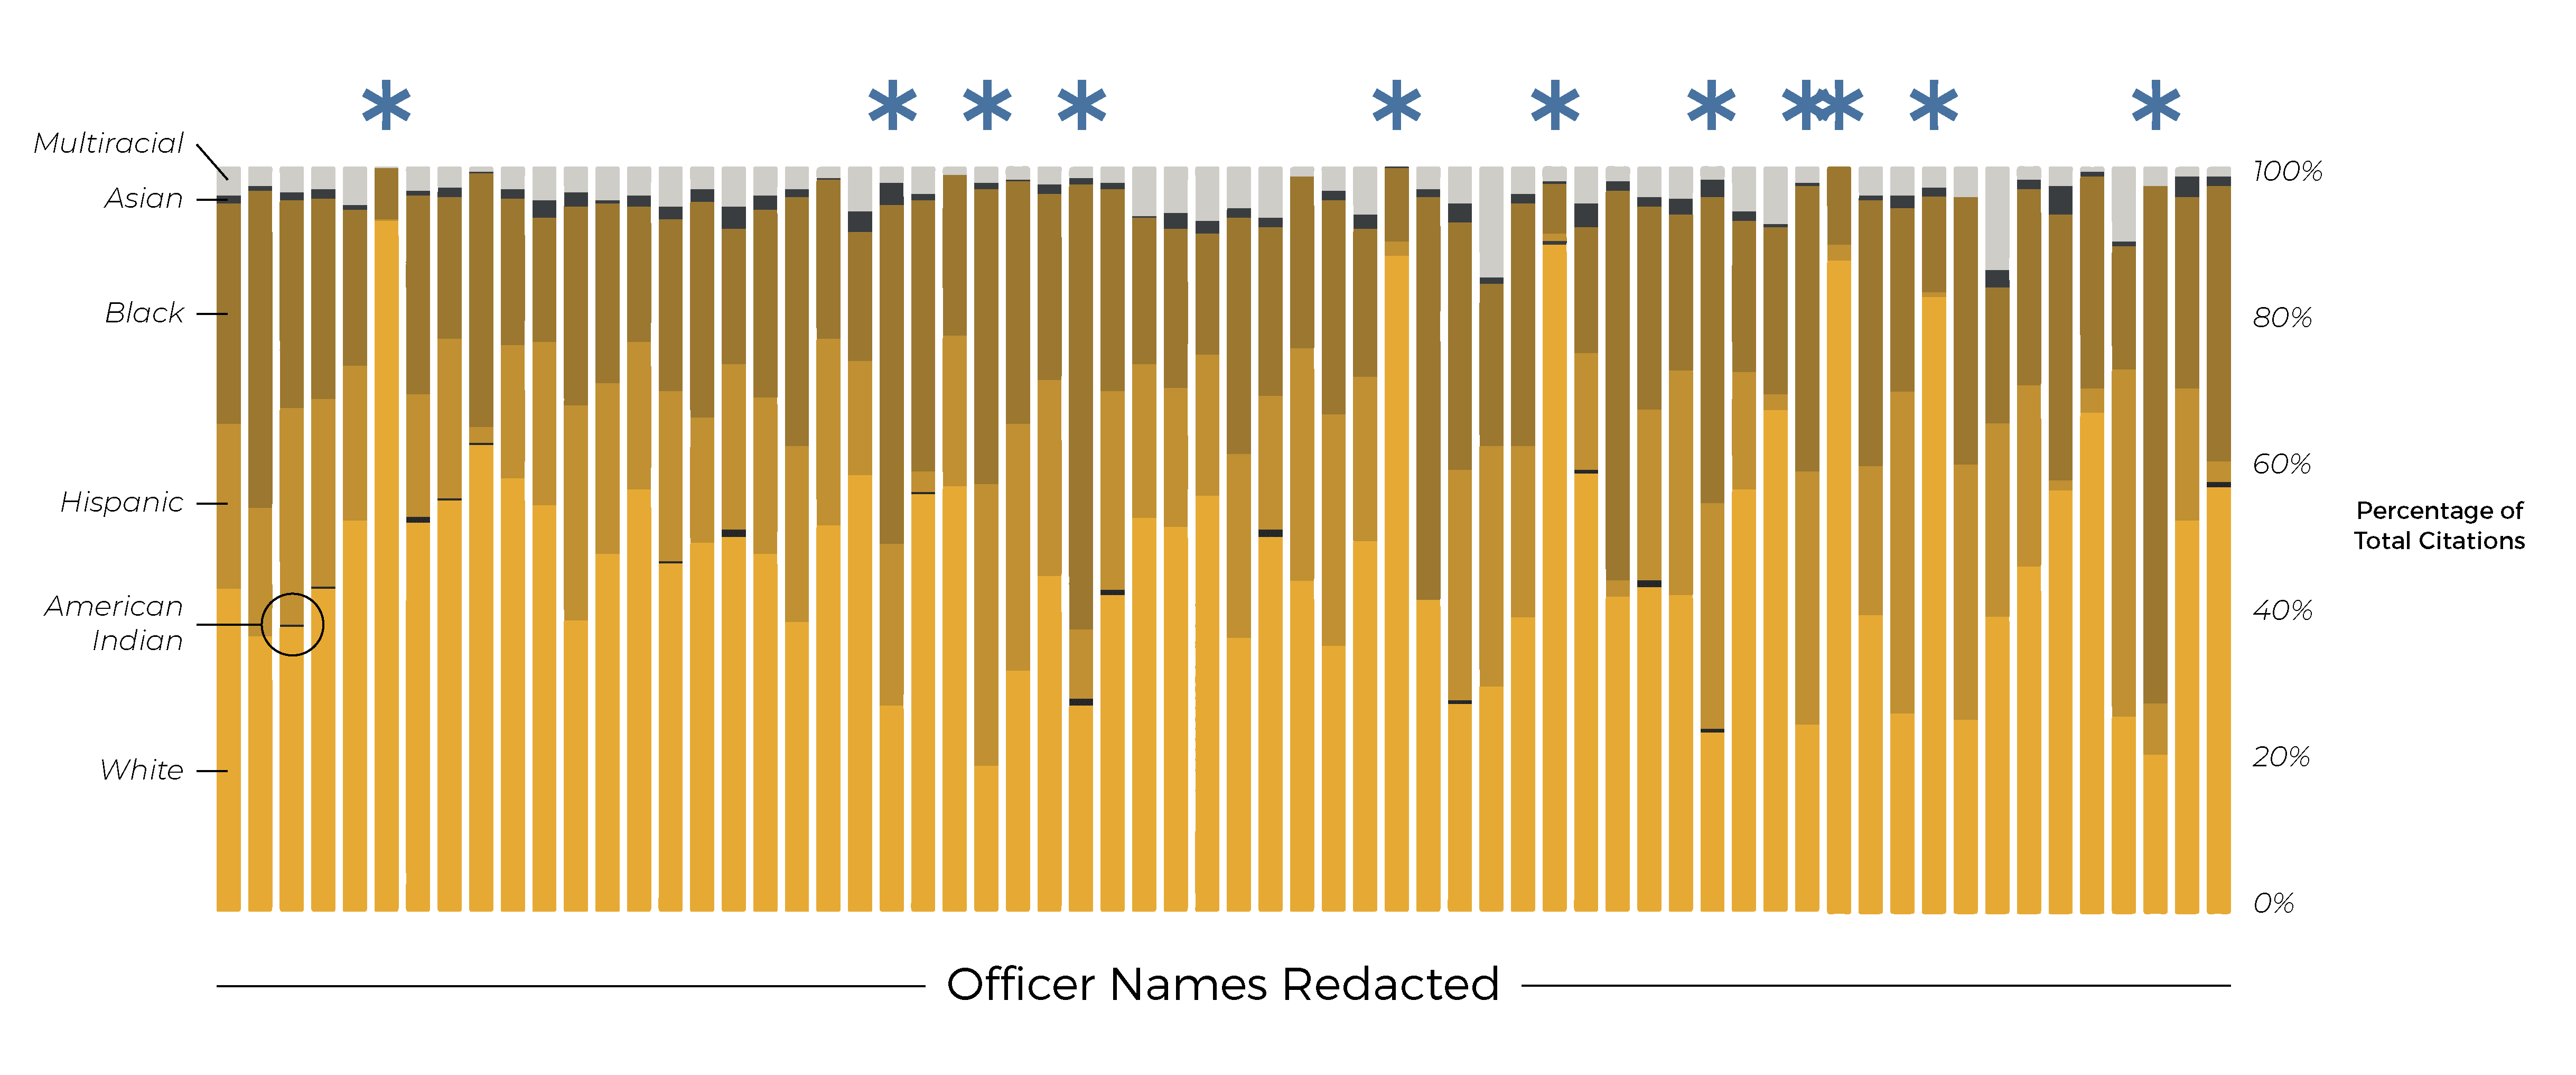 individual-officer-traffic-citations-race-distribution